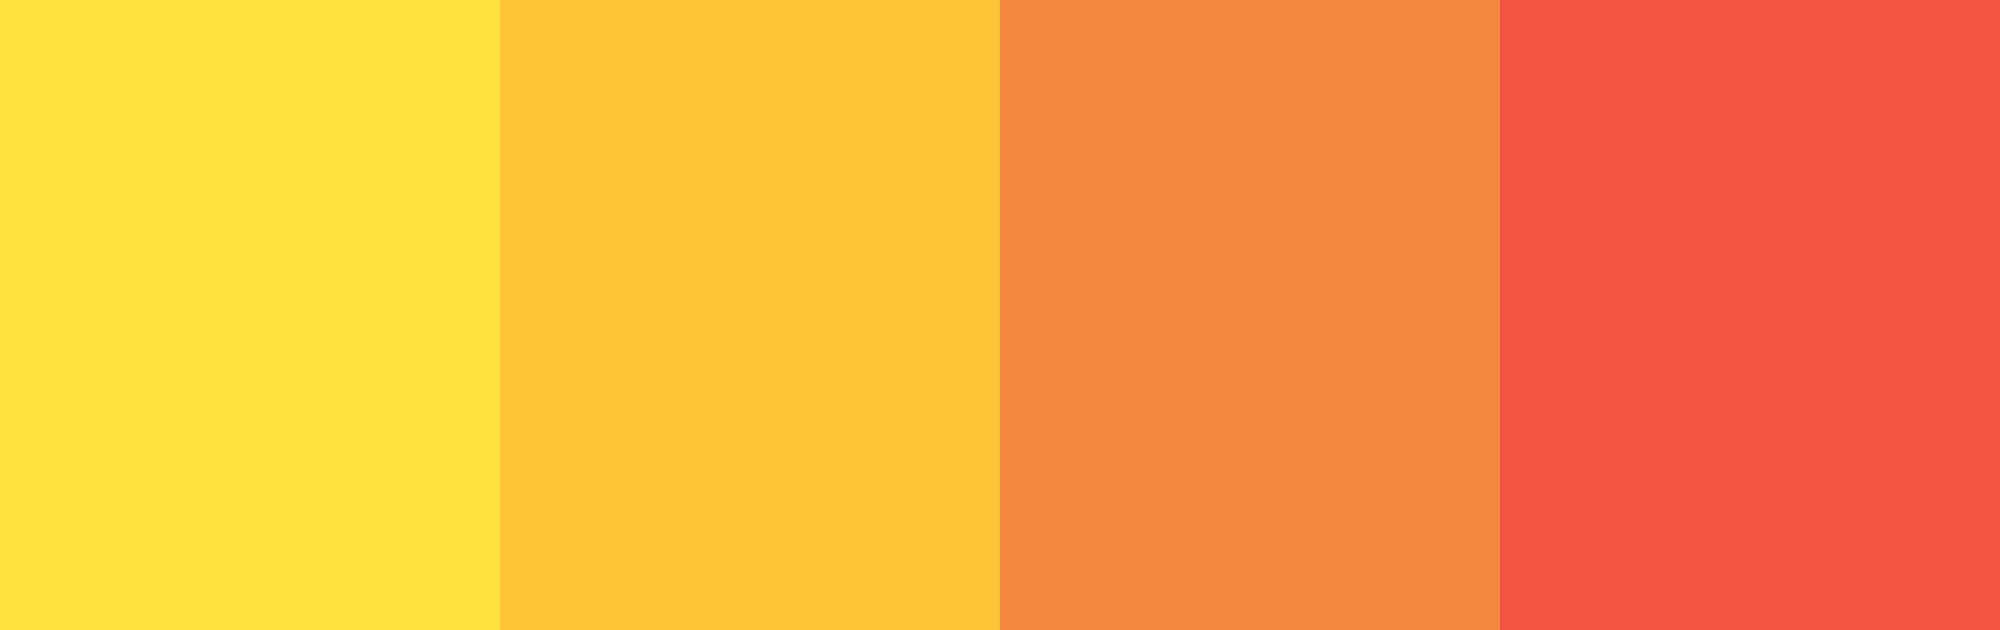 Four warm colors.